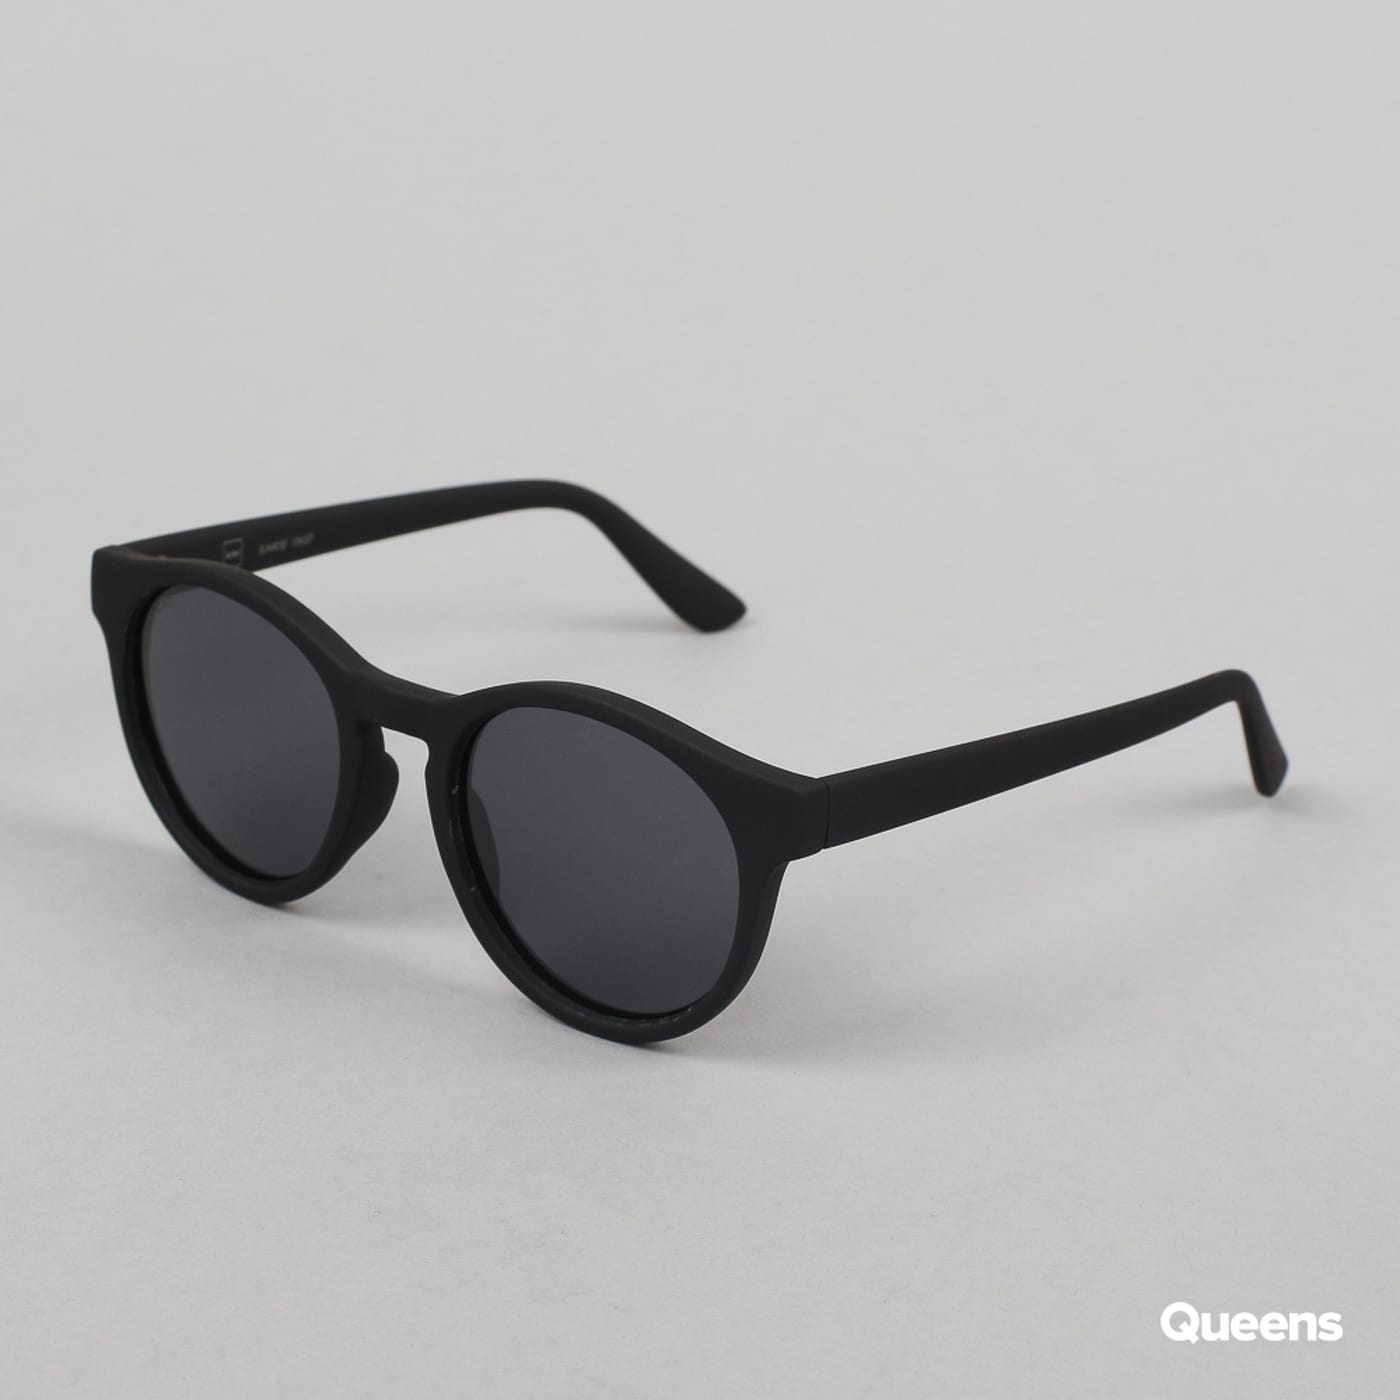 MD Sunglasses Sunrise black / gray